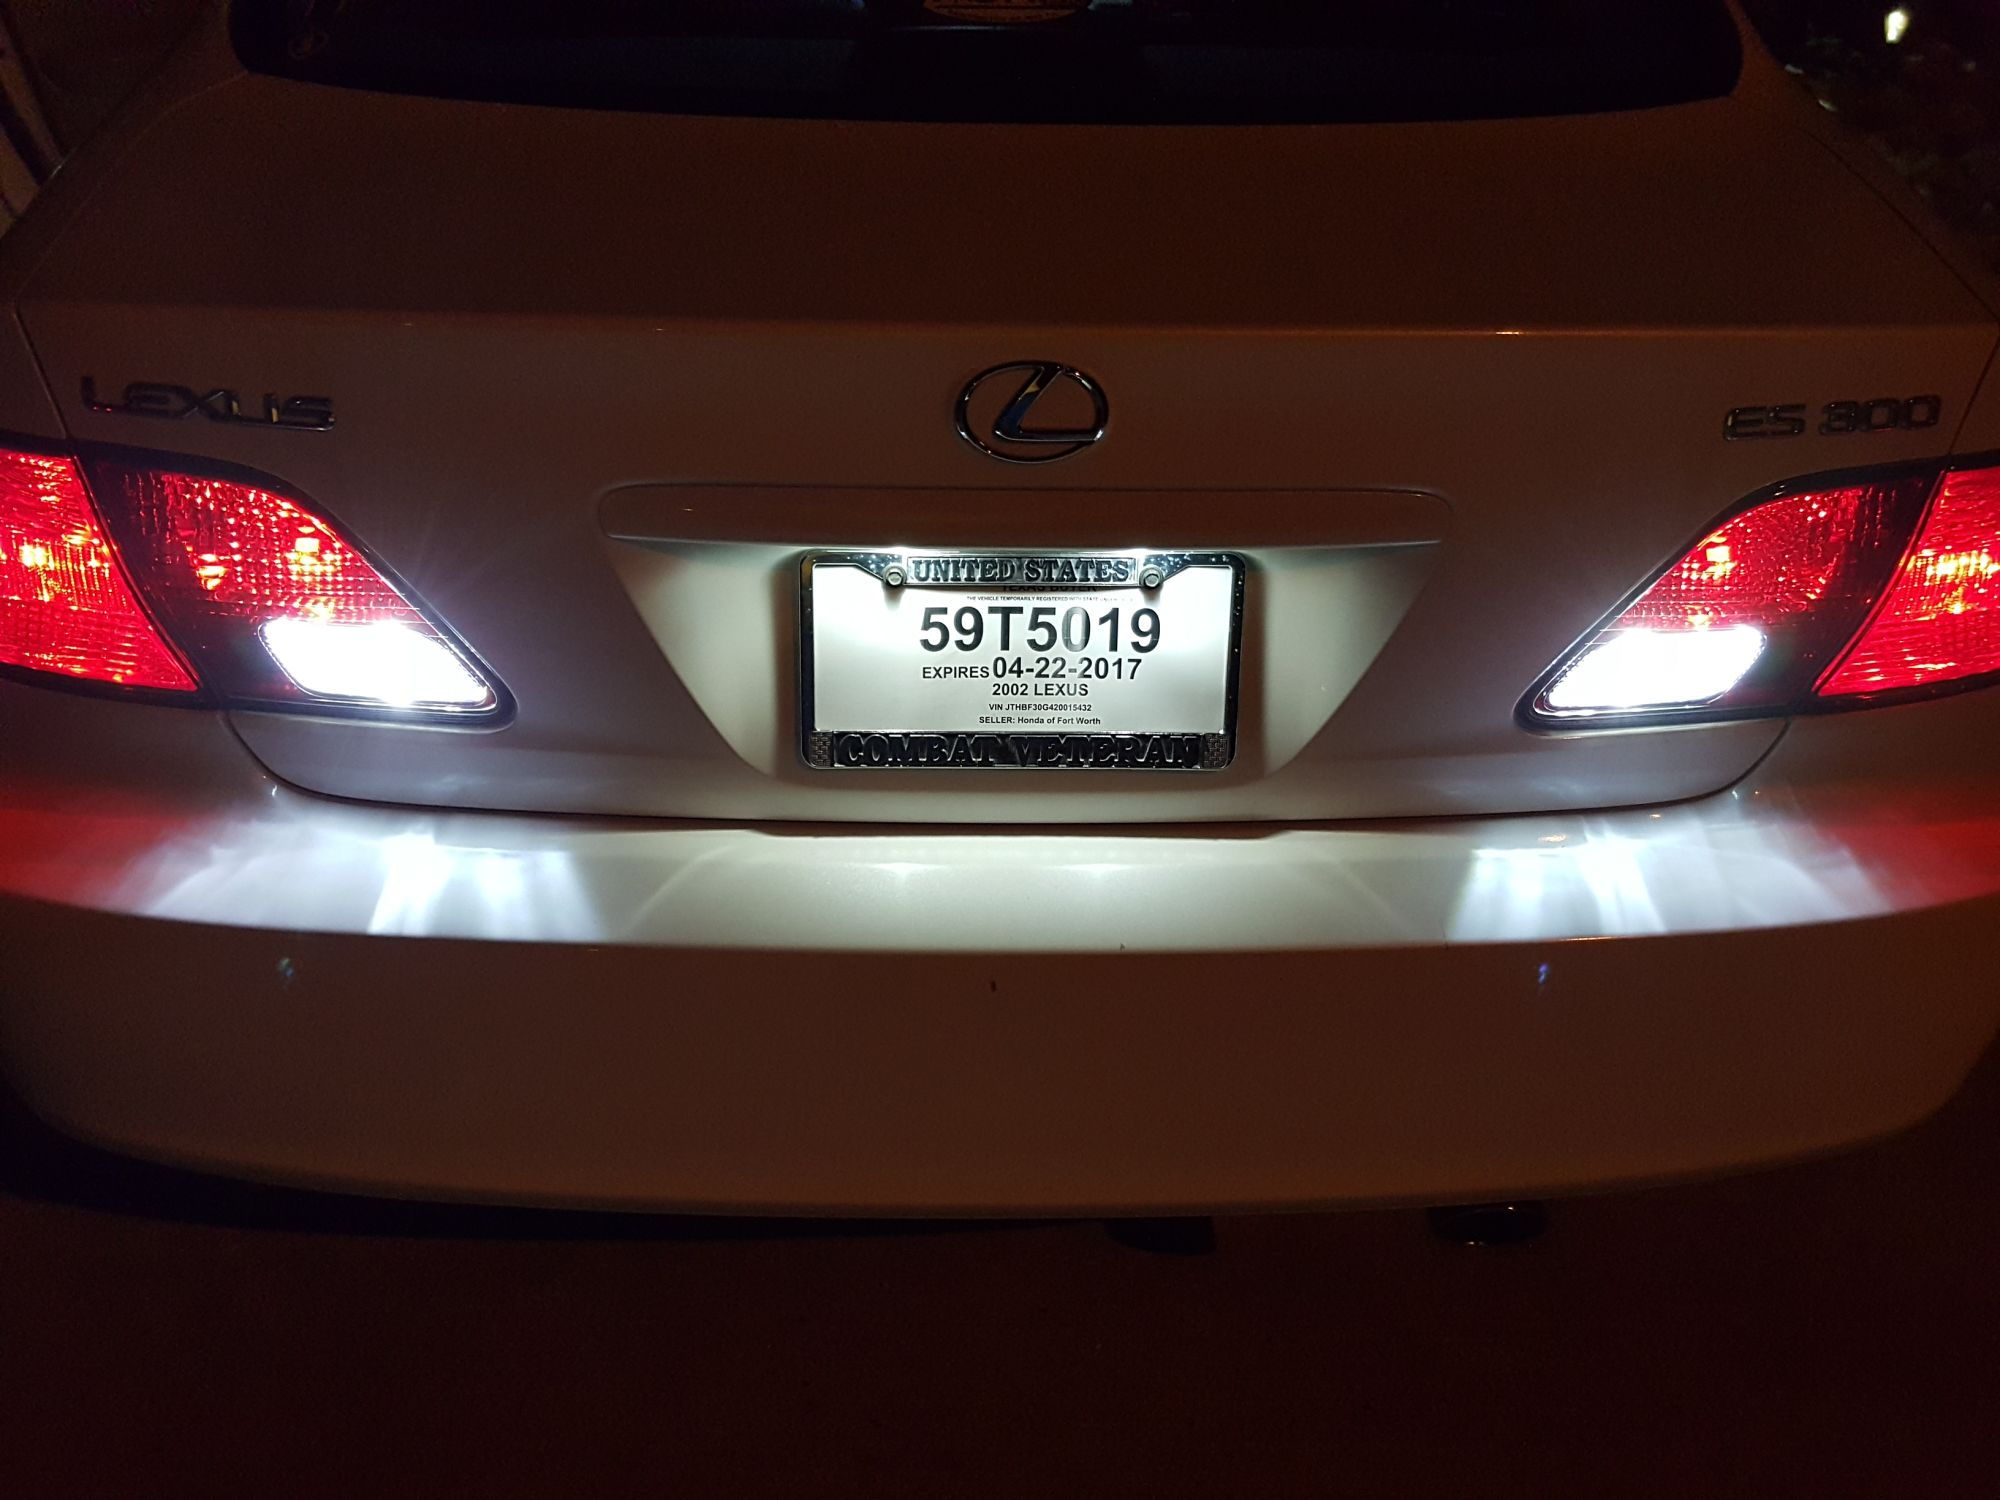 Sewell Lexus Of Ft Worth >> New to me 02 ES300 - ClubLexus - Lexus Forum Discussion